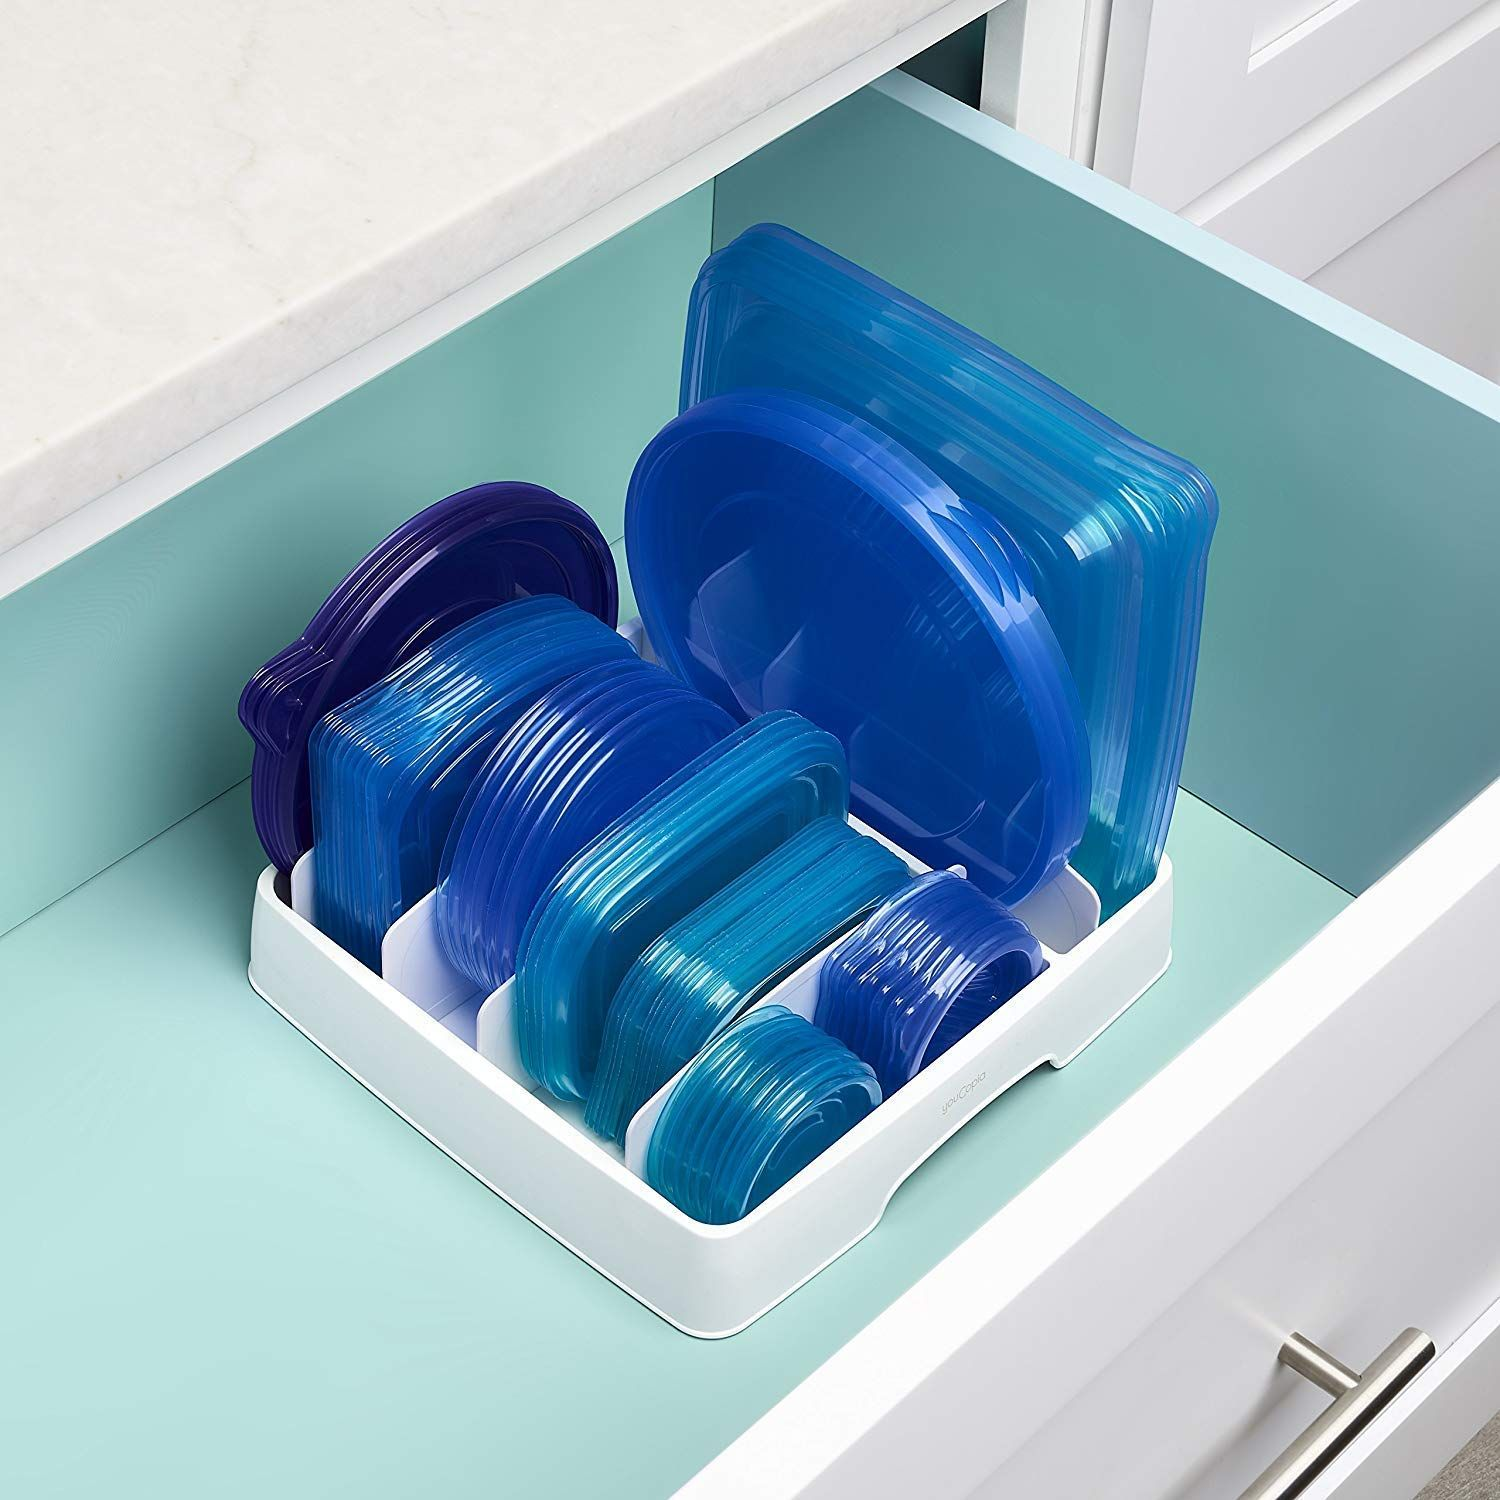 This Tupperware Lid Organizer Will Save Your Kitchen Cabinets